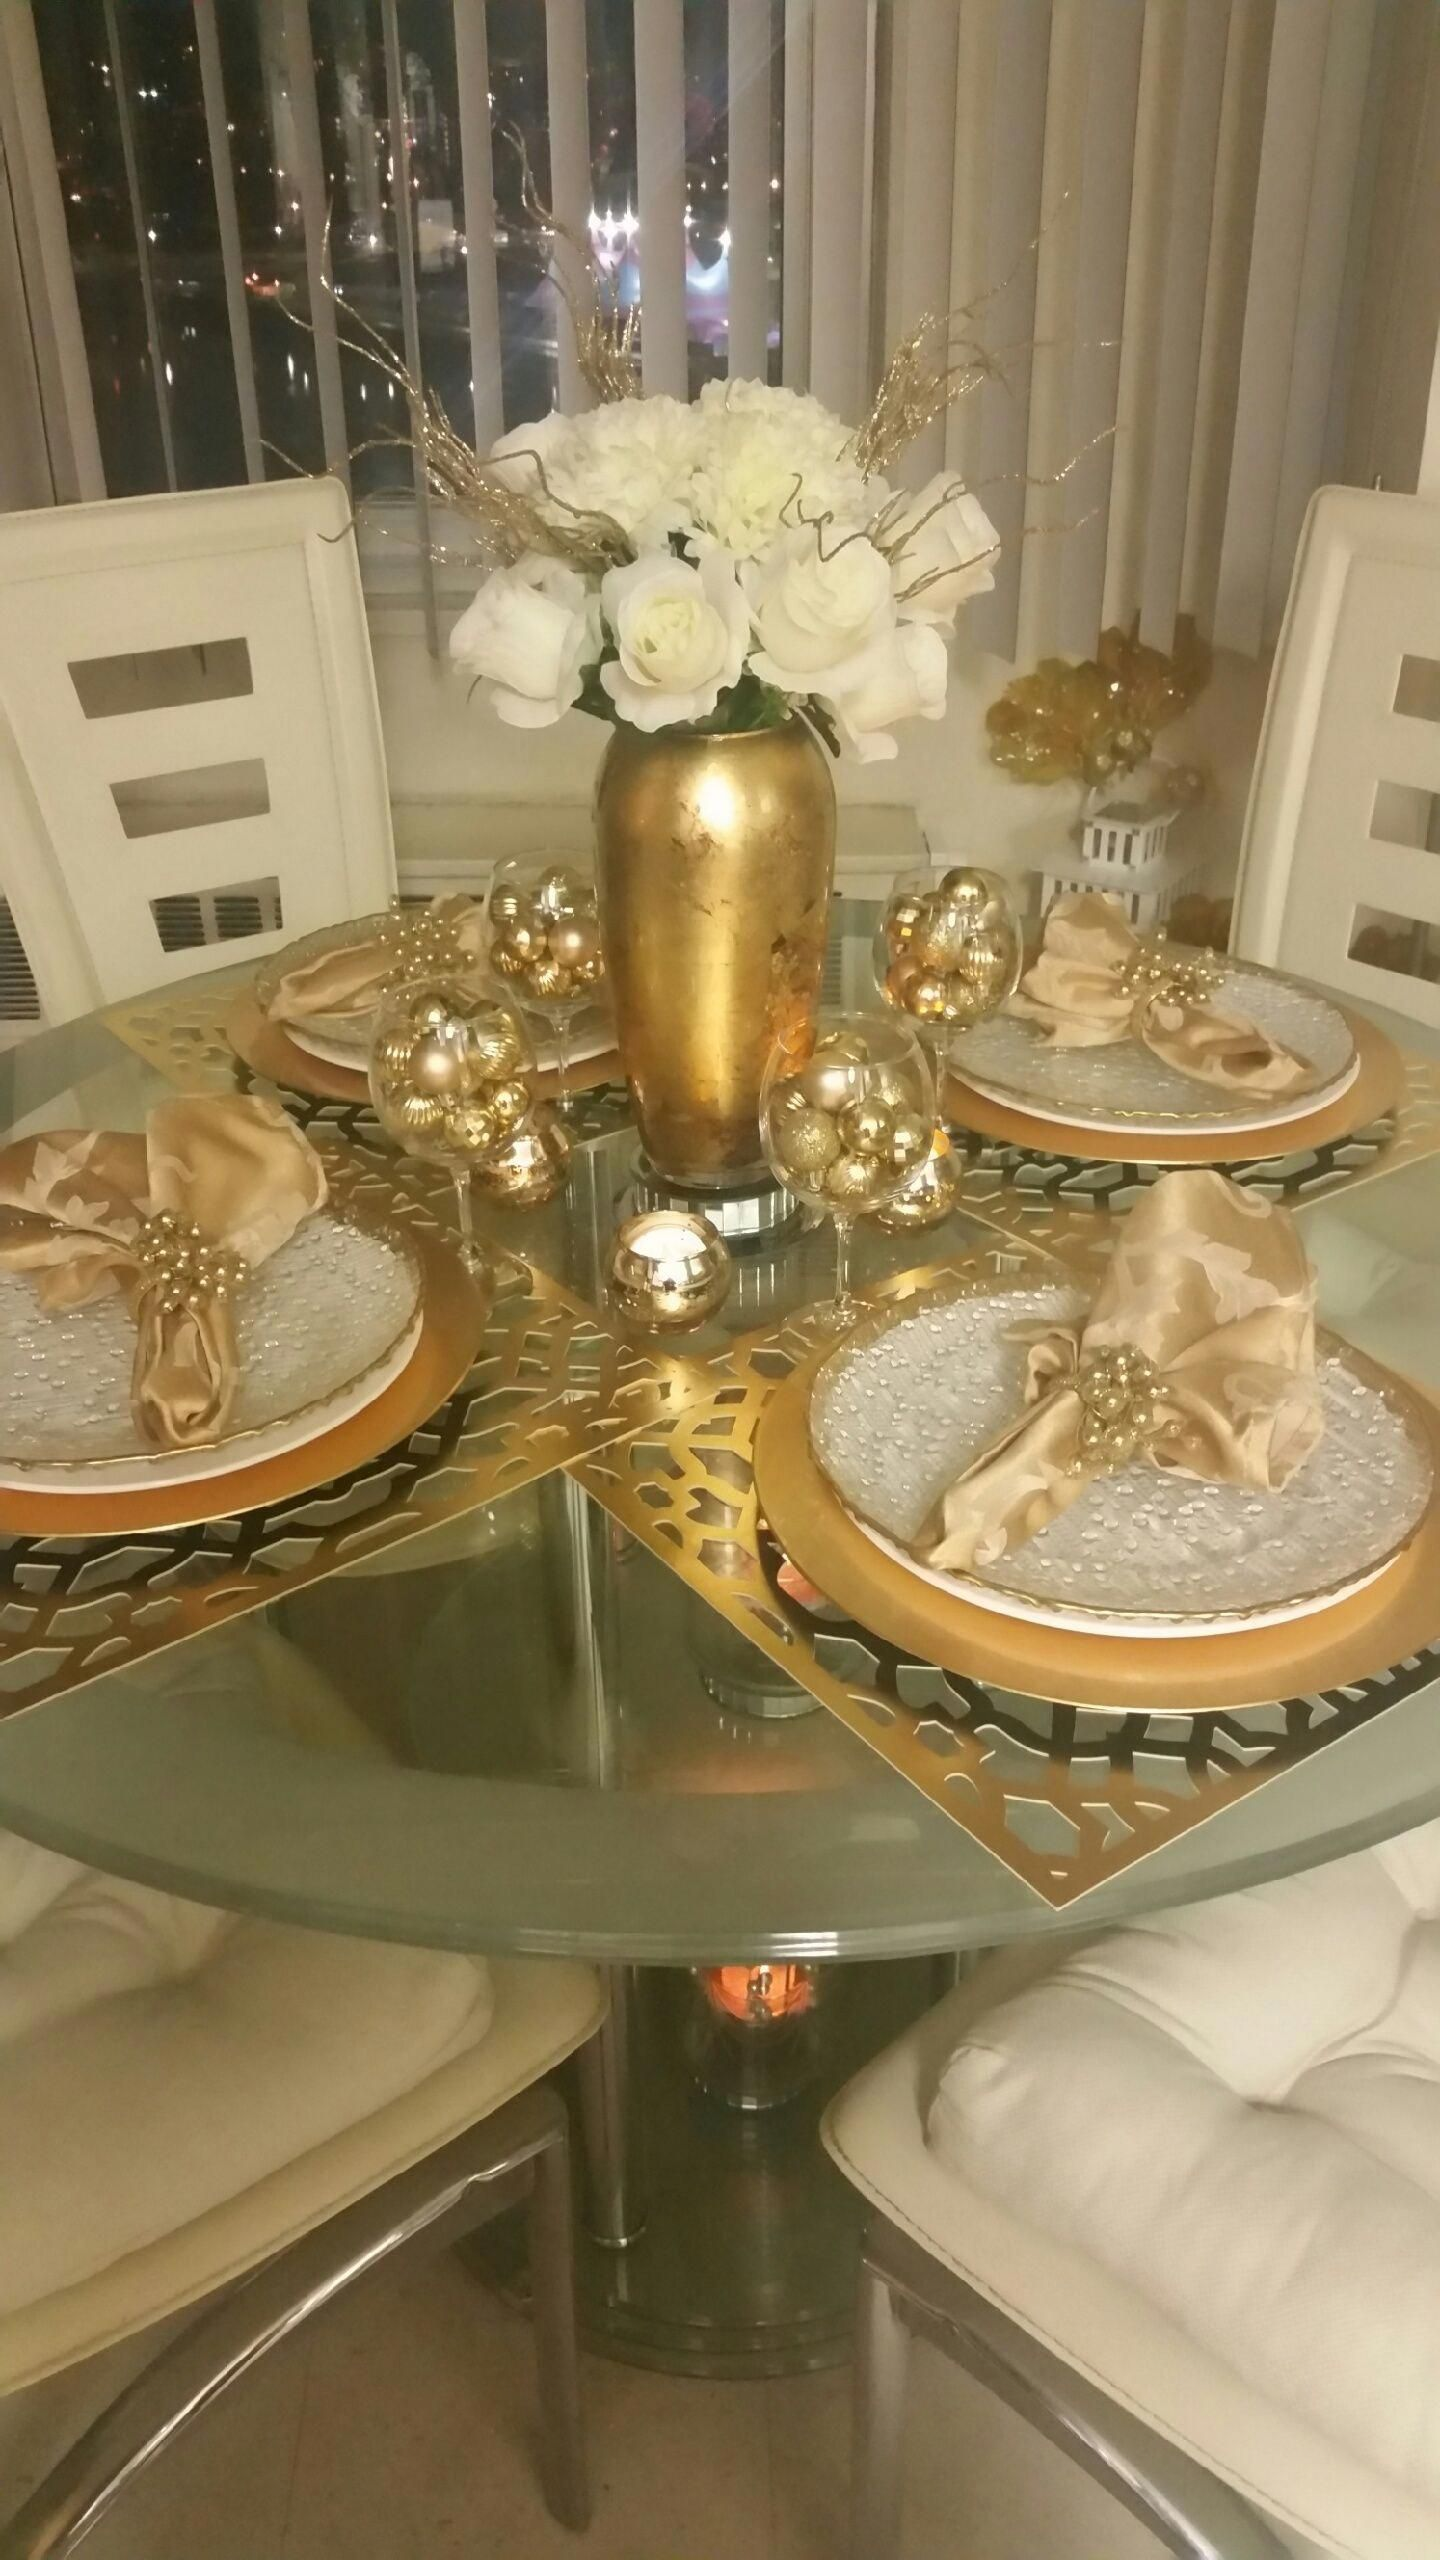 Monaco Placemat Set Of 4 In 2021 Dinning Table Decor Dining Room Table Decor Dining Table Decor